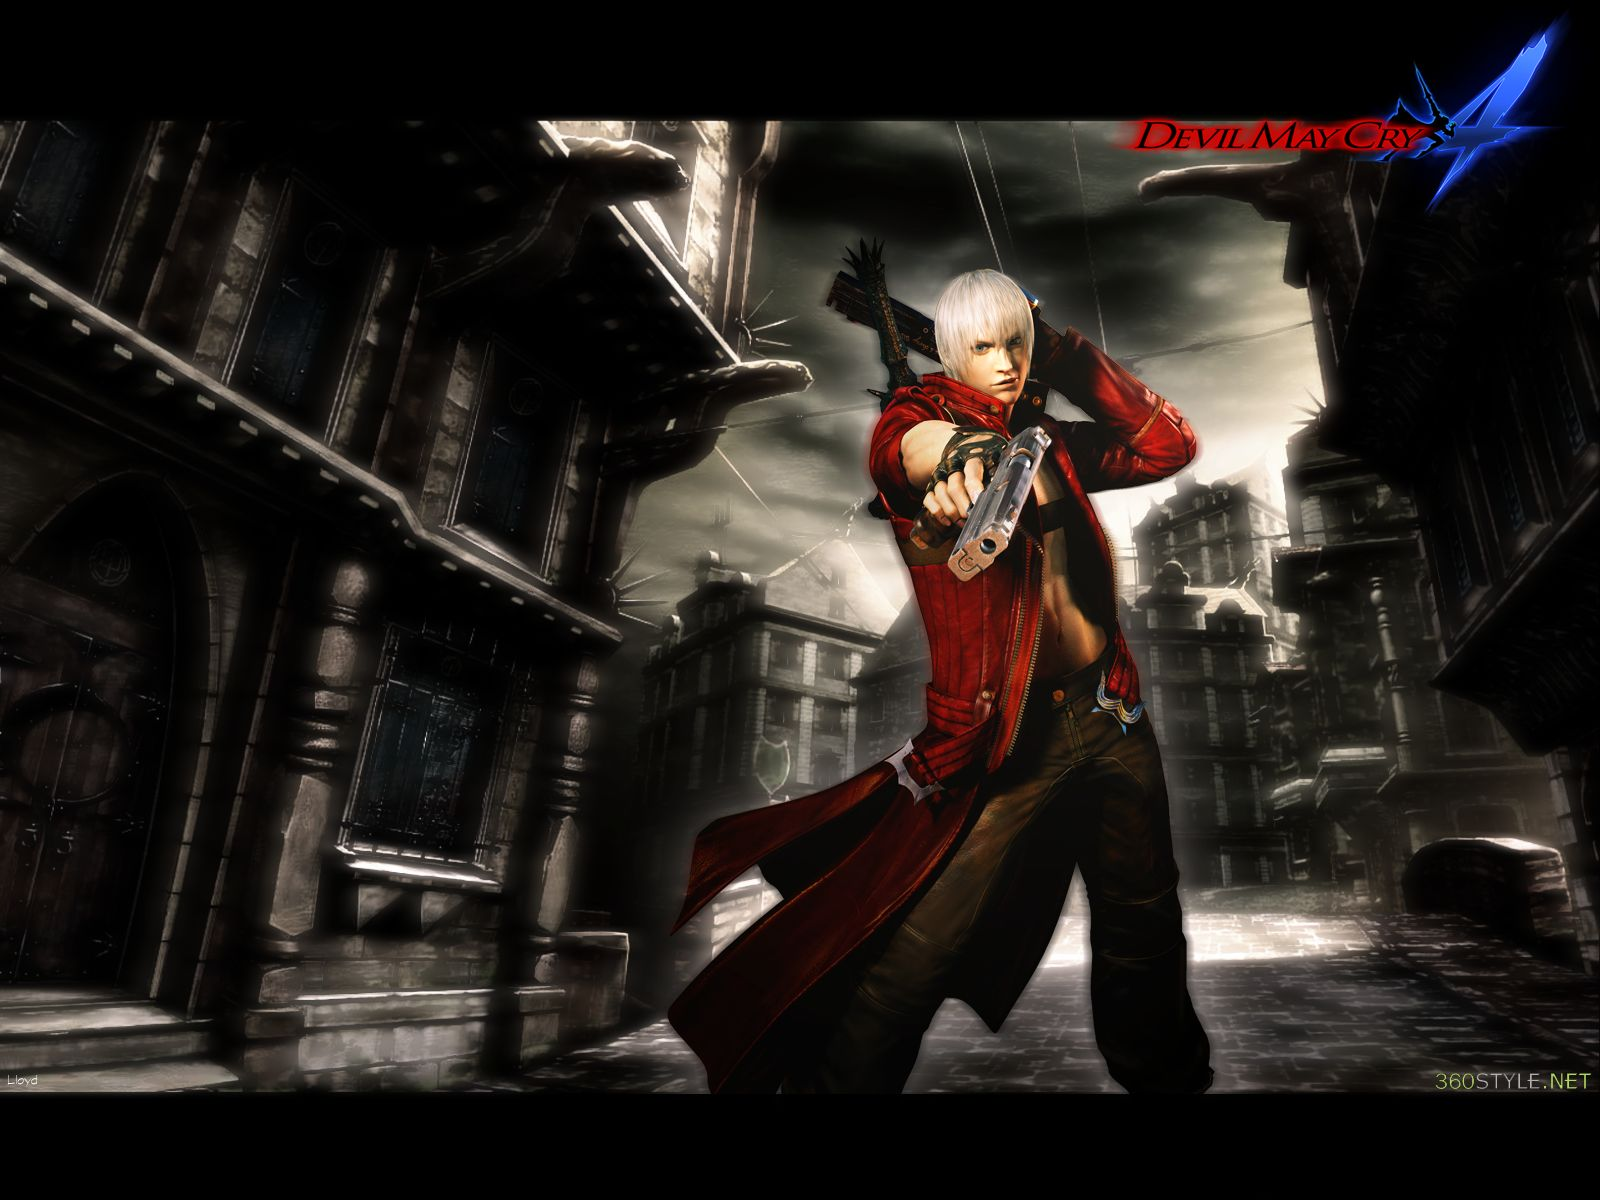 Devil May Cry 4 Wallpaper By Igotgame1075 On Deviantart